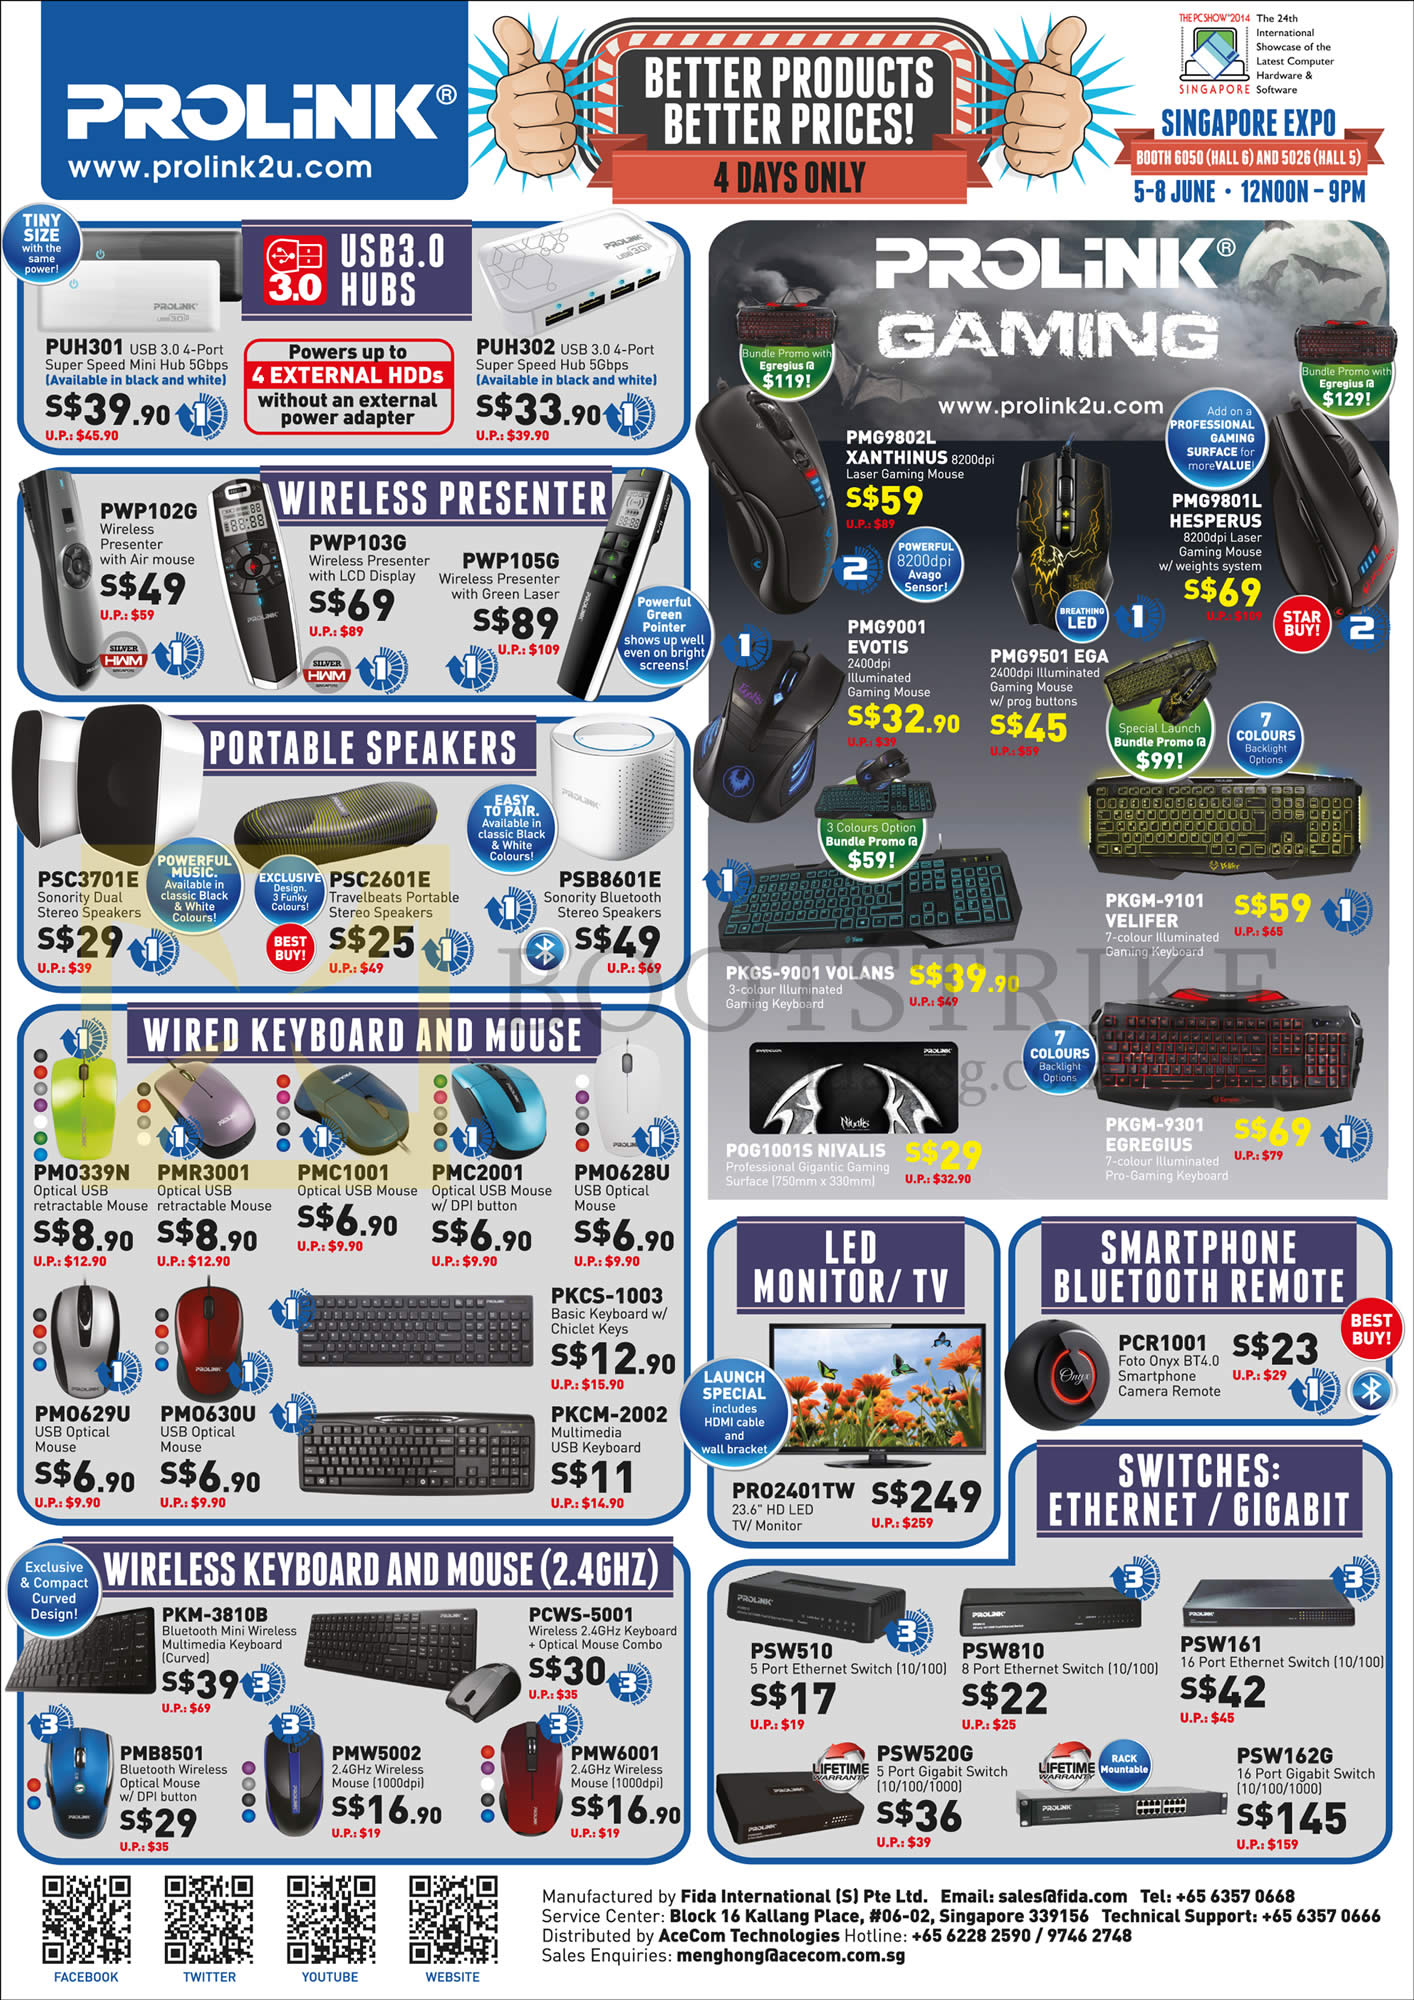 PC SHOW 2014 price list image brochure of Prolink USB 3.0 Hubs, Wireless Presenter, Portable Speakers, Wired Keyboard, Mouse, LED Monitor, TV, Ethernet, Gigabit Switches